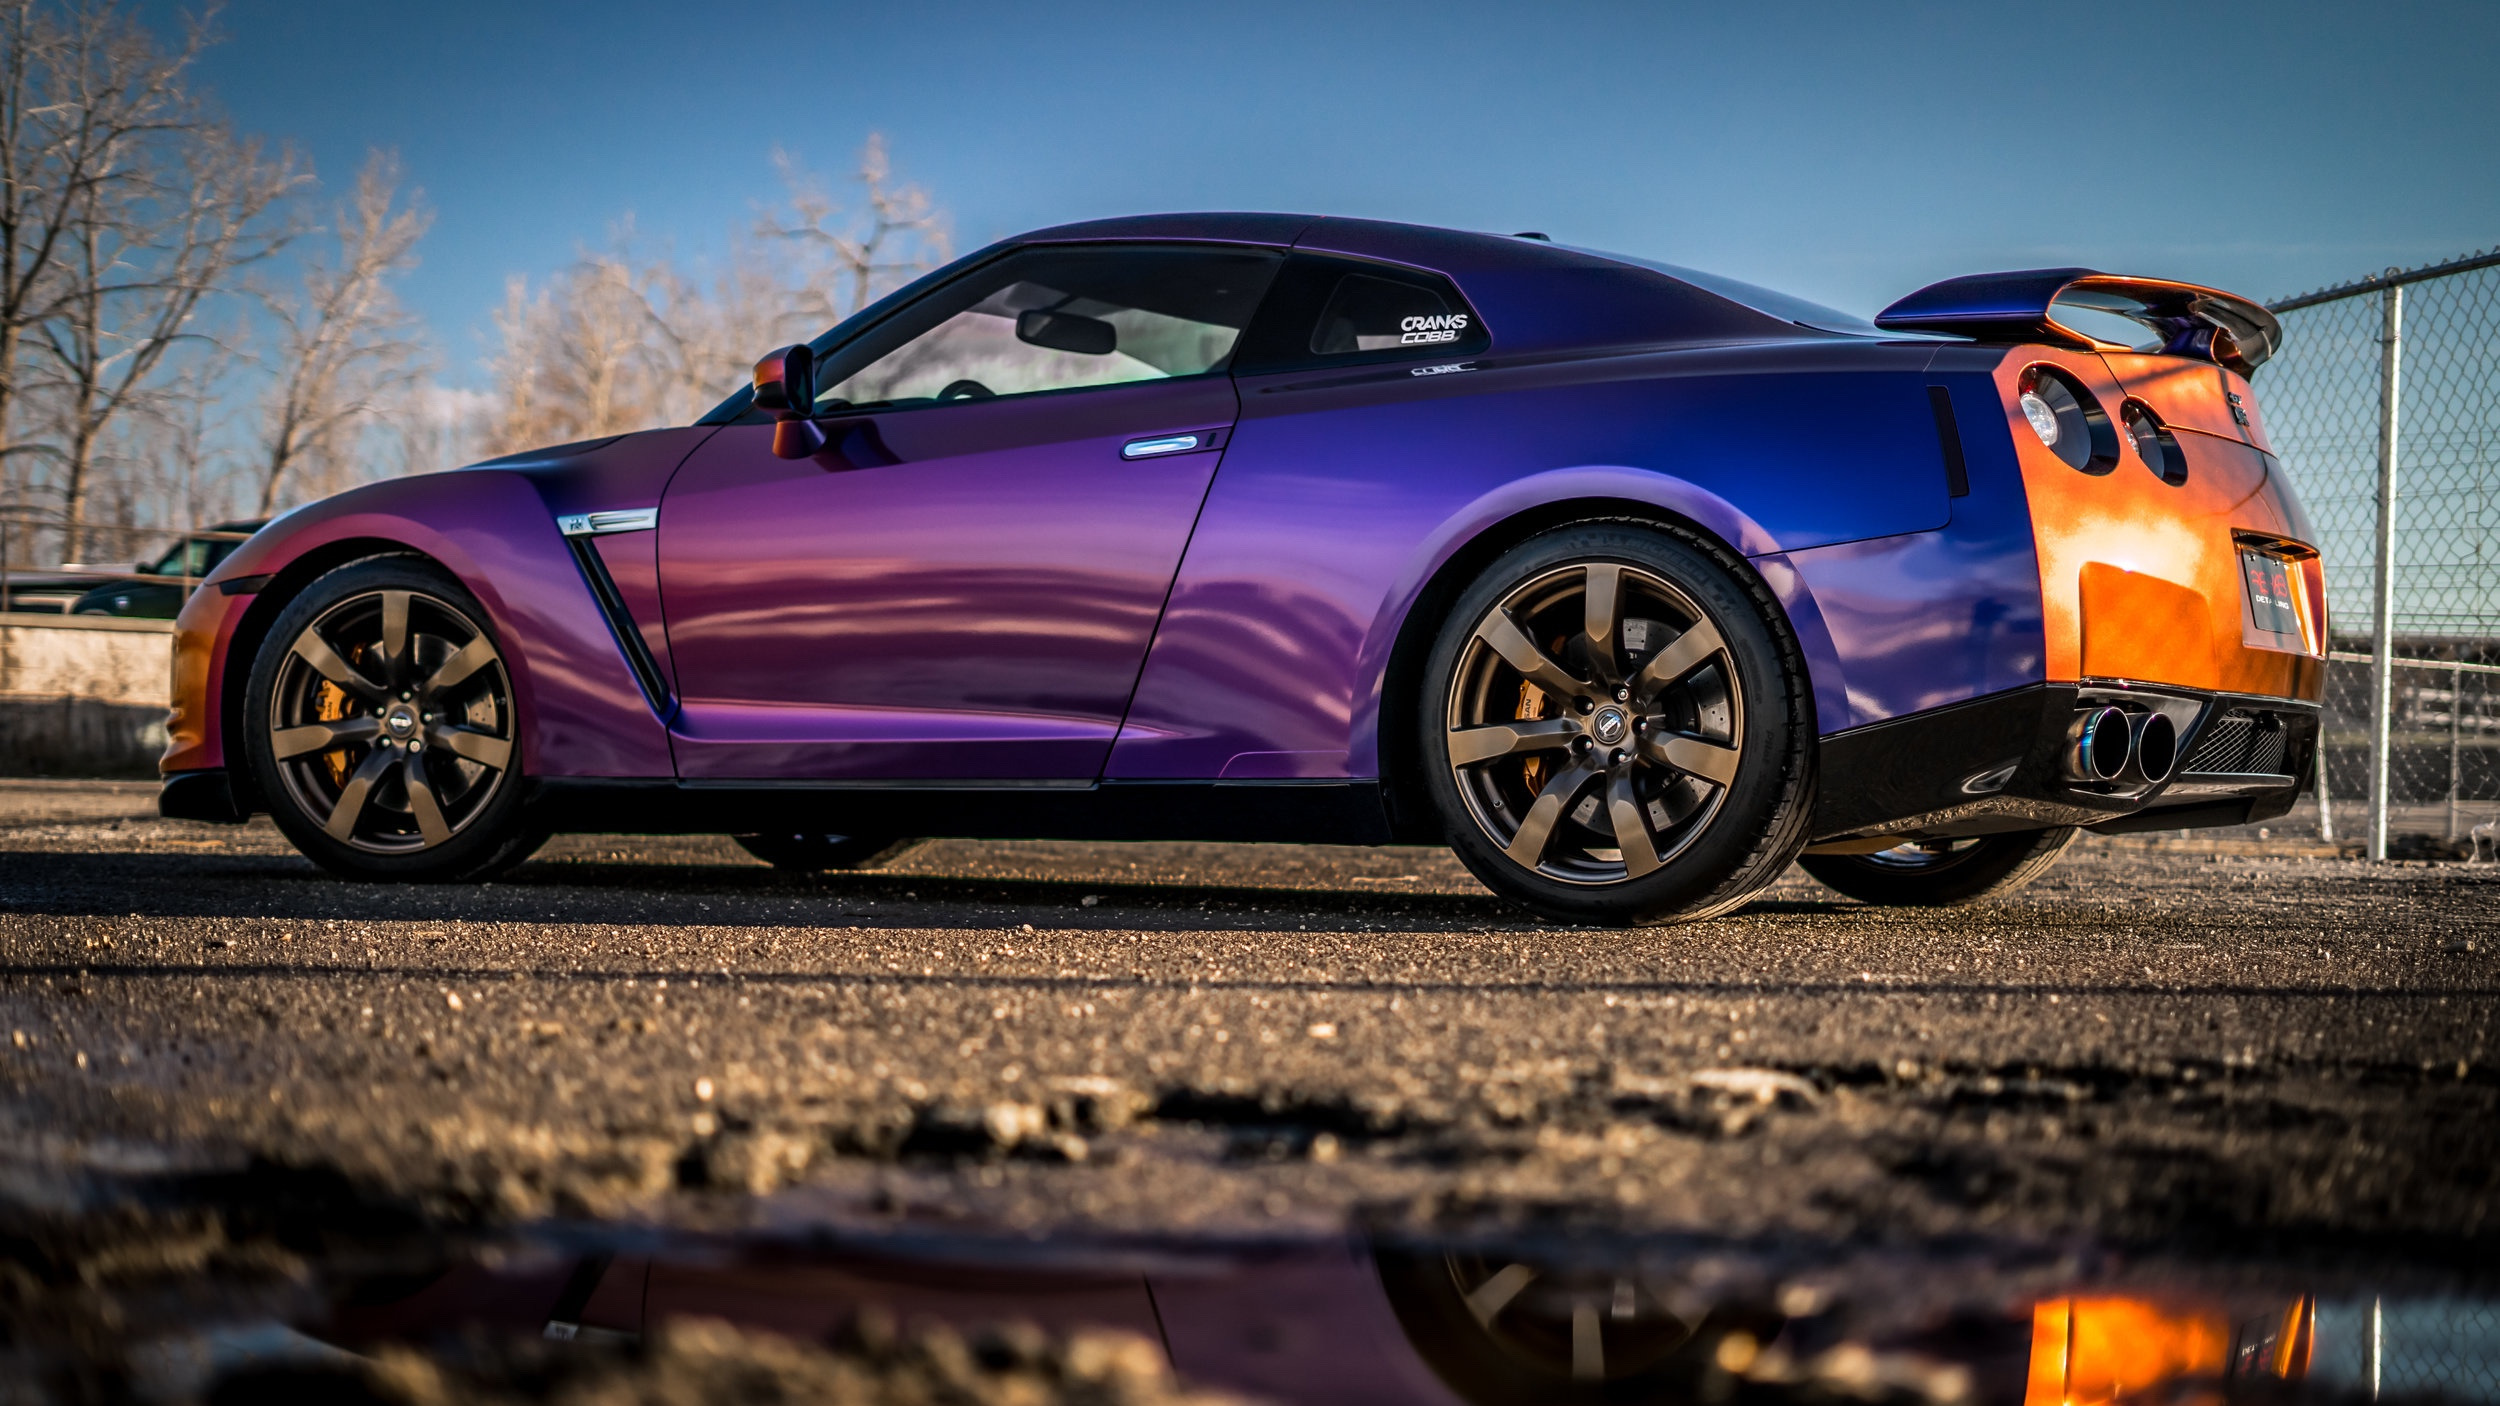 R35 GT-R - Rolling Thunder Colorshift, Ceramic Pro